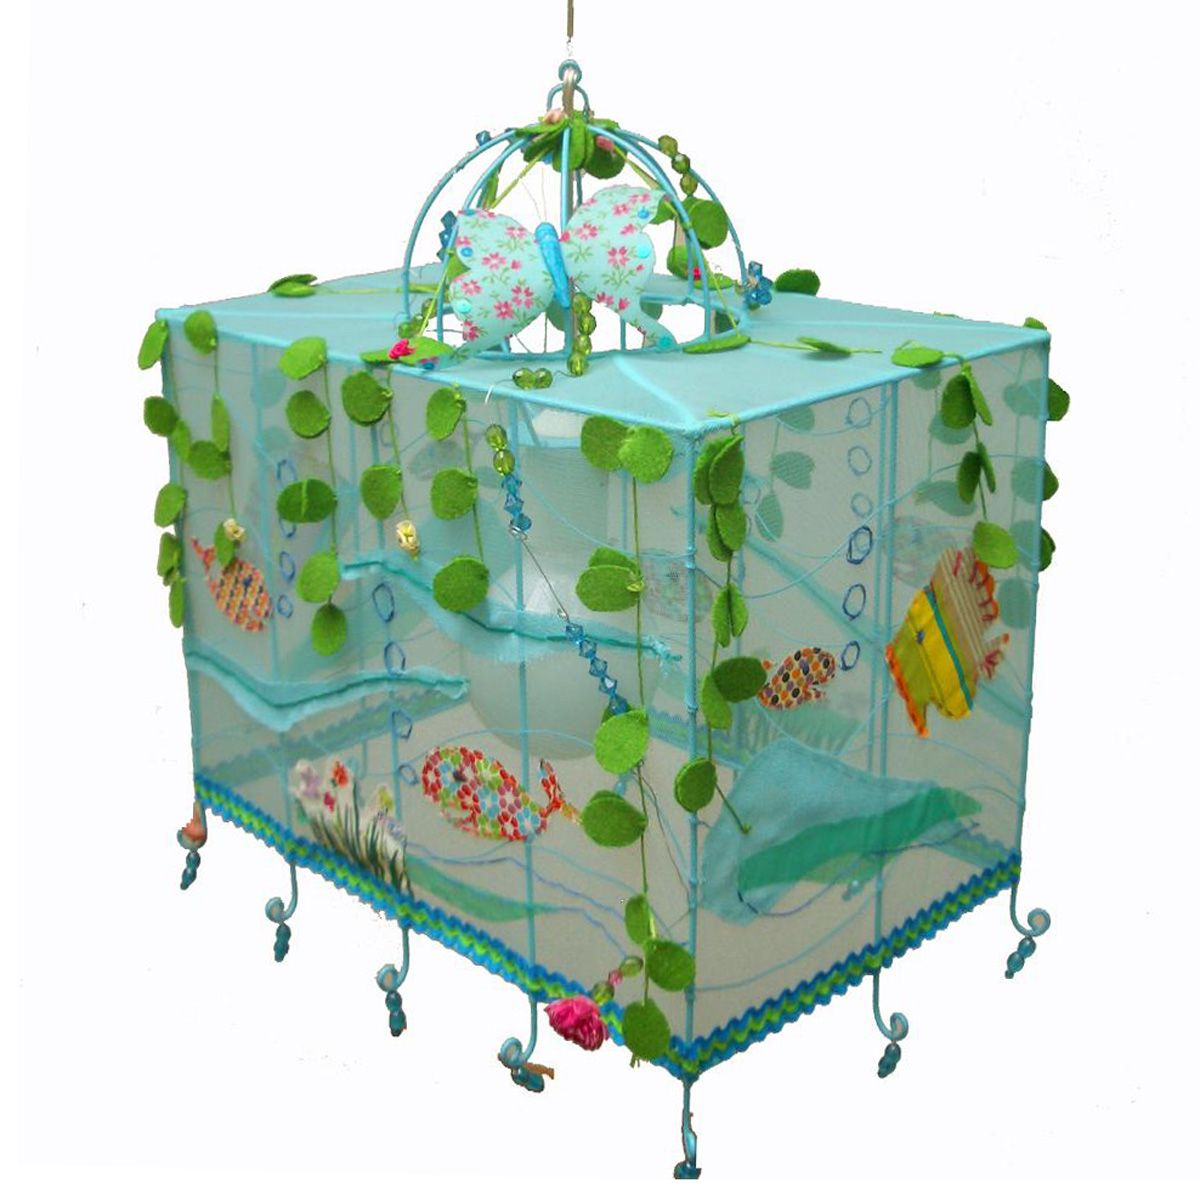 taj wood scherer kinder lampenschirm doolittle aquarium. Black Bedroom Furniture Sets. Home Design Ideas